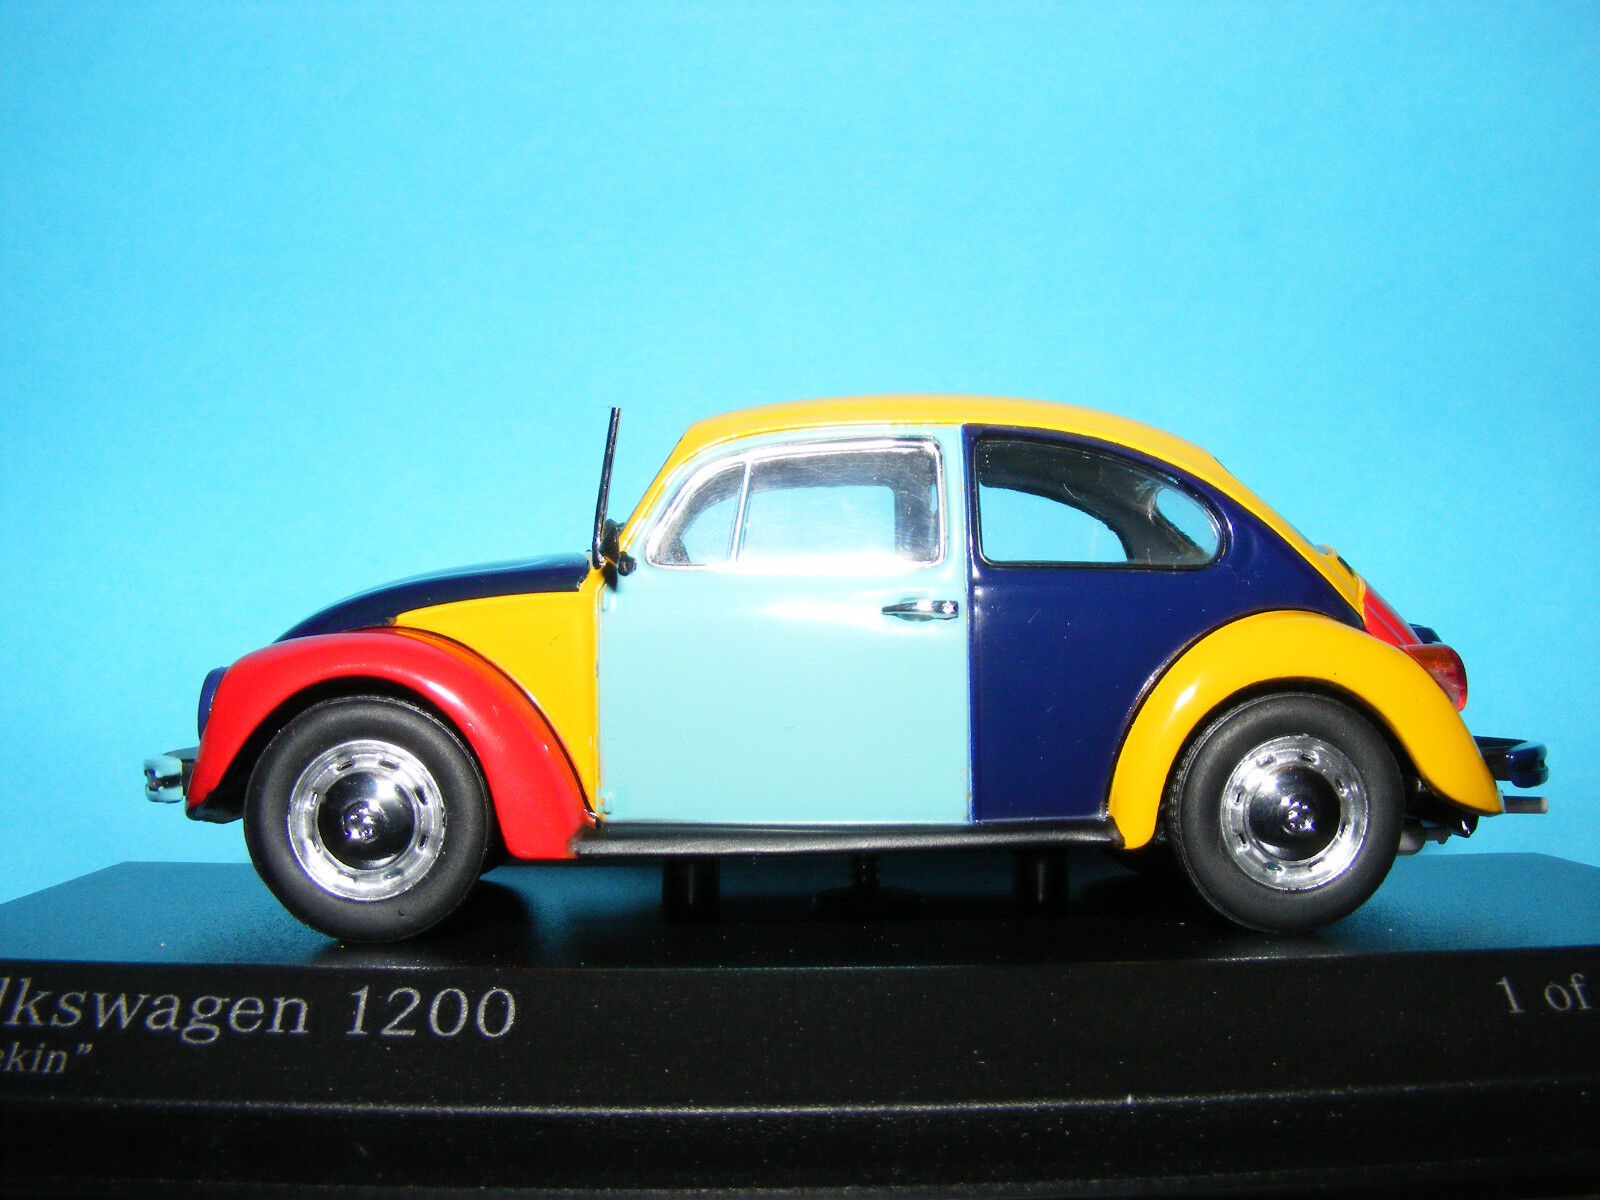 VW Beetle 'Harlequin' 'Harlequin' 'Harlequin' 1200 Collectable Minichamps  Product in 1 43rd. Scale deb4b6